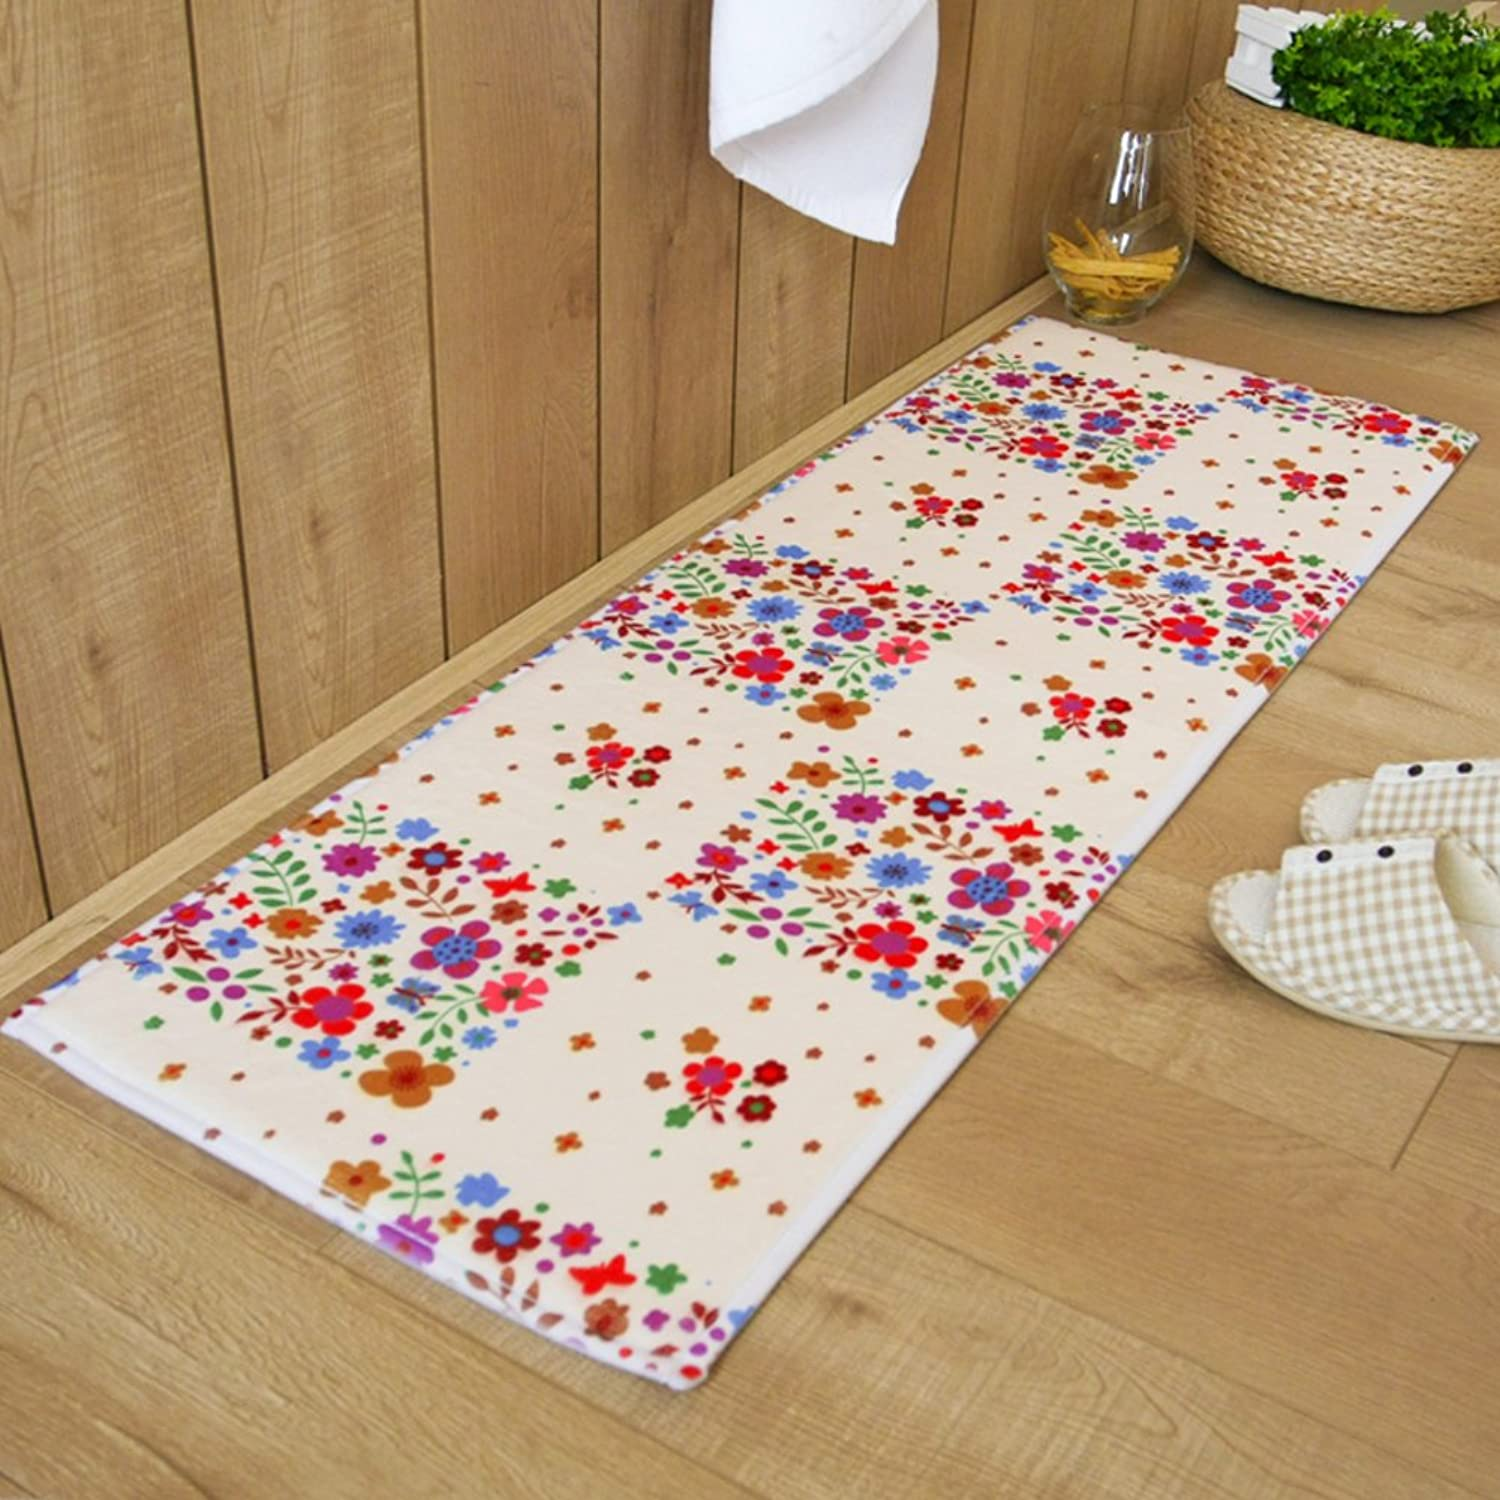 Mats Mat Toilet Kitchen Bedroom Bathroom Absorbent N-Slip Mats-A 20x31inch